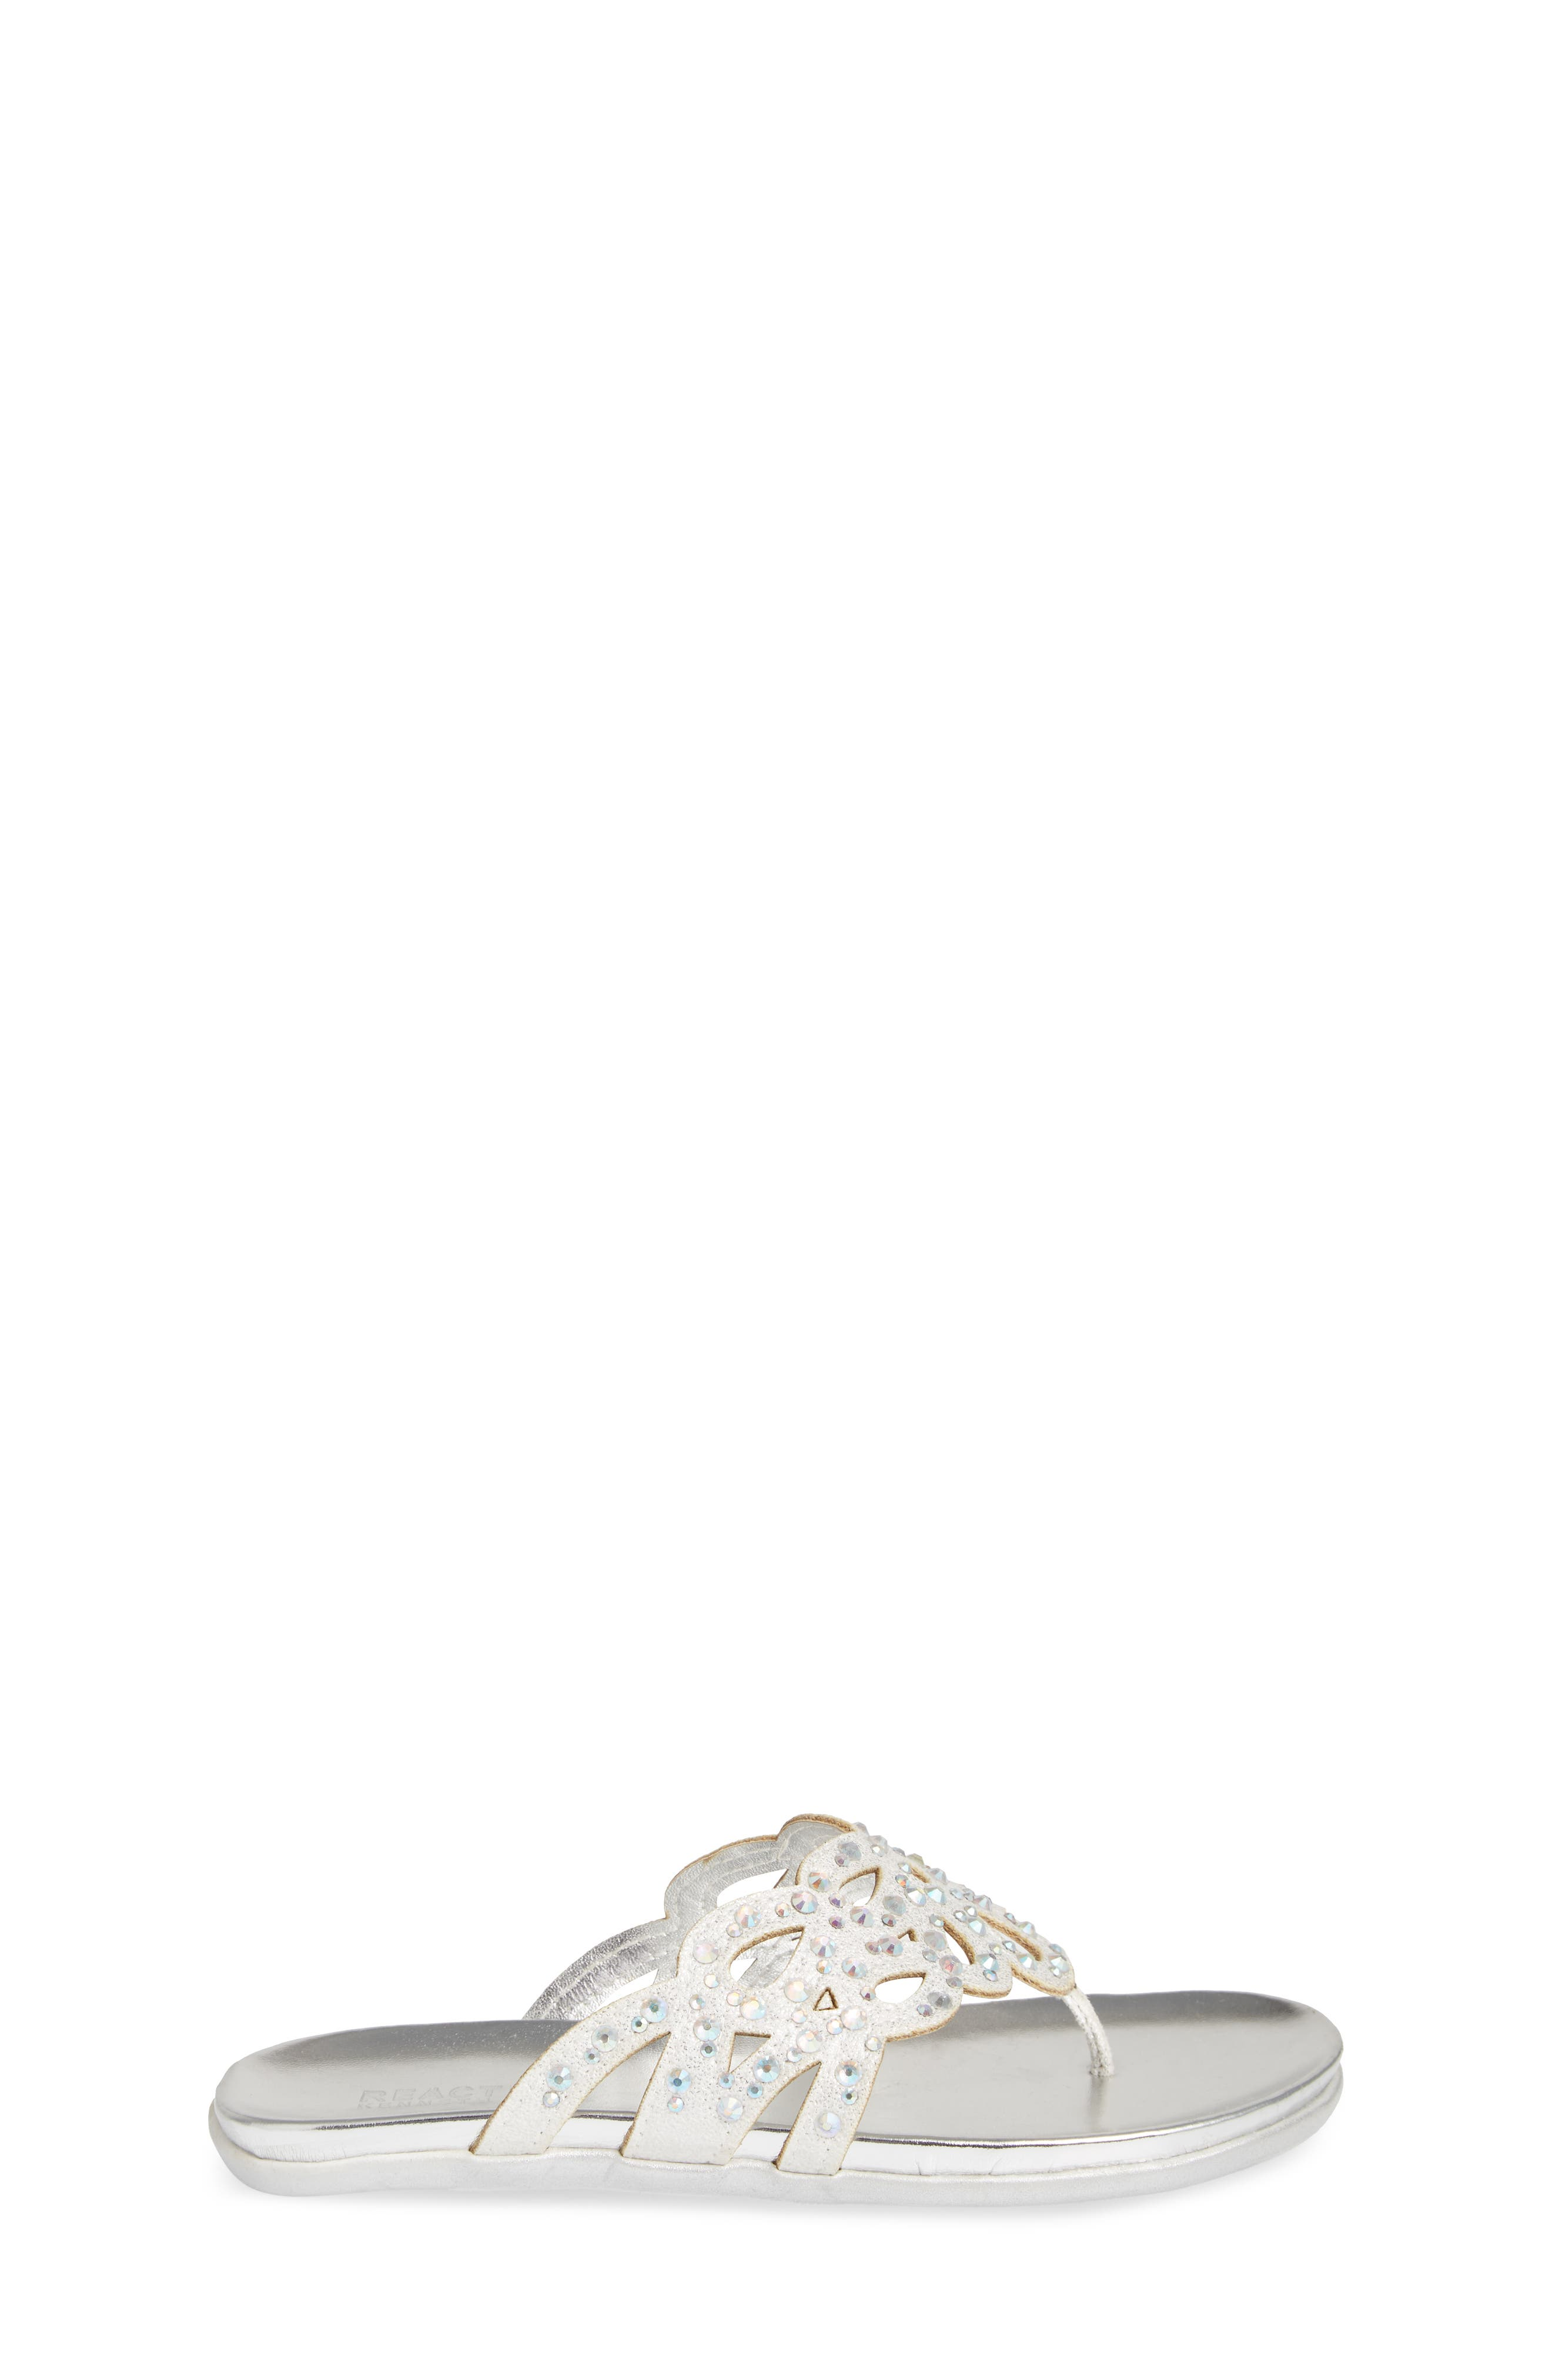 REACTION KENNETH COLE,                             Kenneth Cole New York Flutter Metallic Crystal Thong Sandal,                             Alternate thumbnail 3, color,                             044